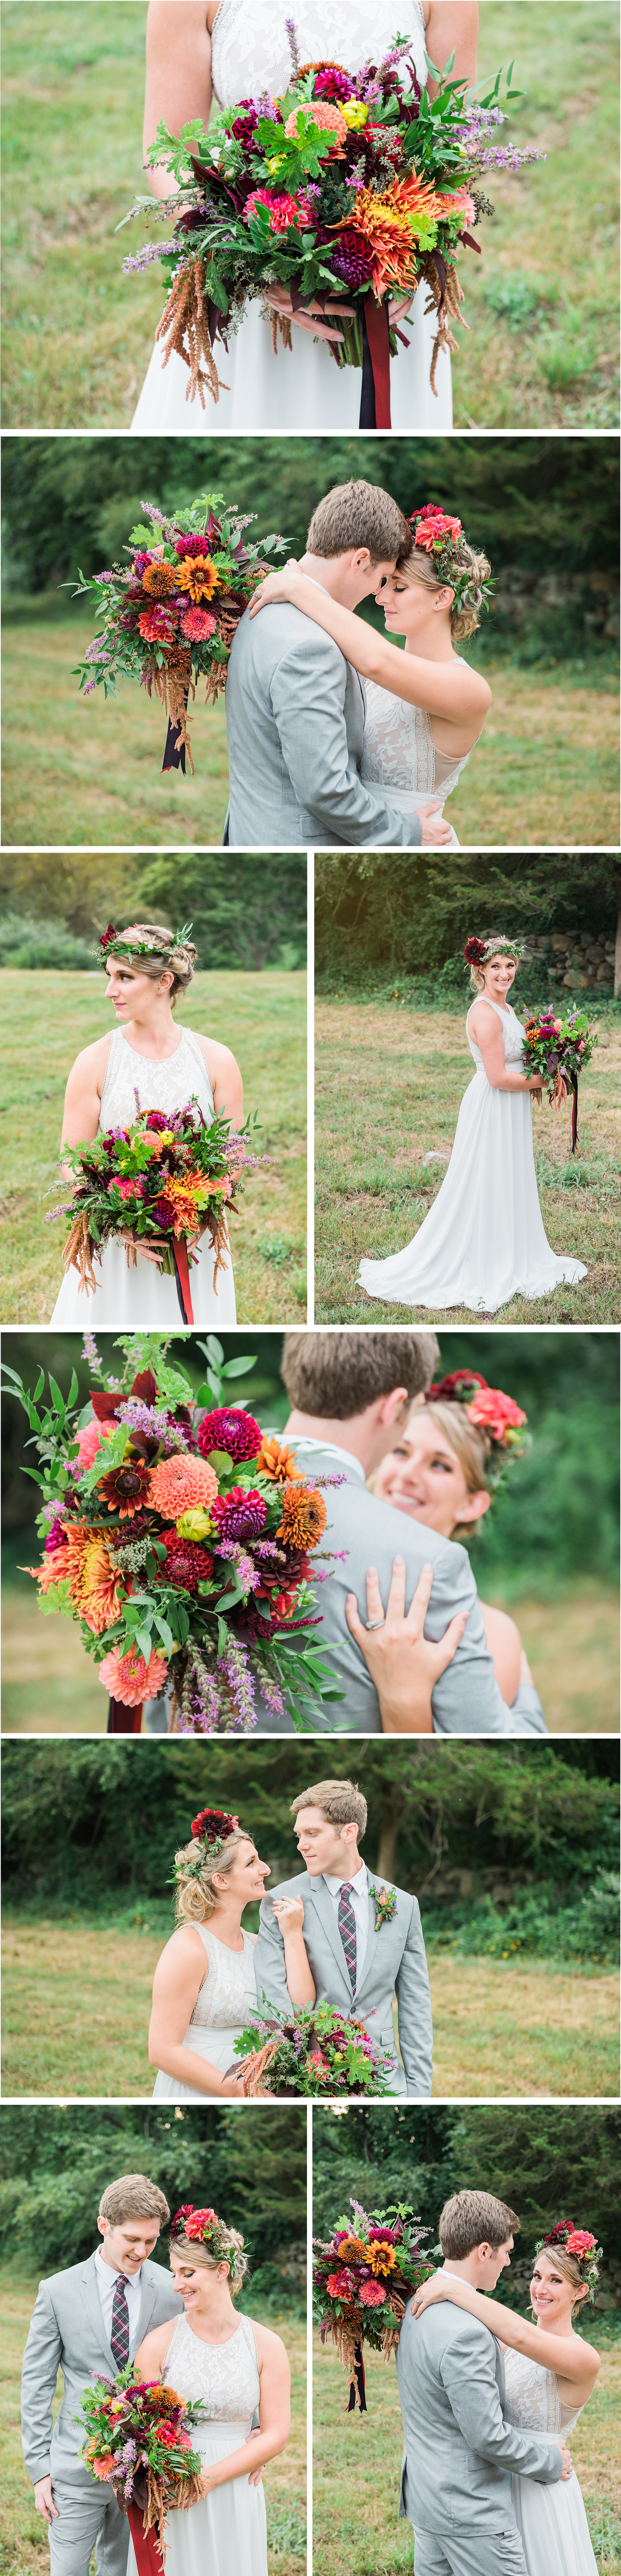 Connecticut Boho Bridal Wedding